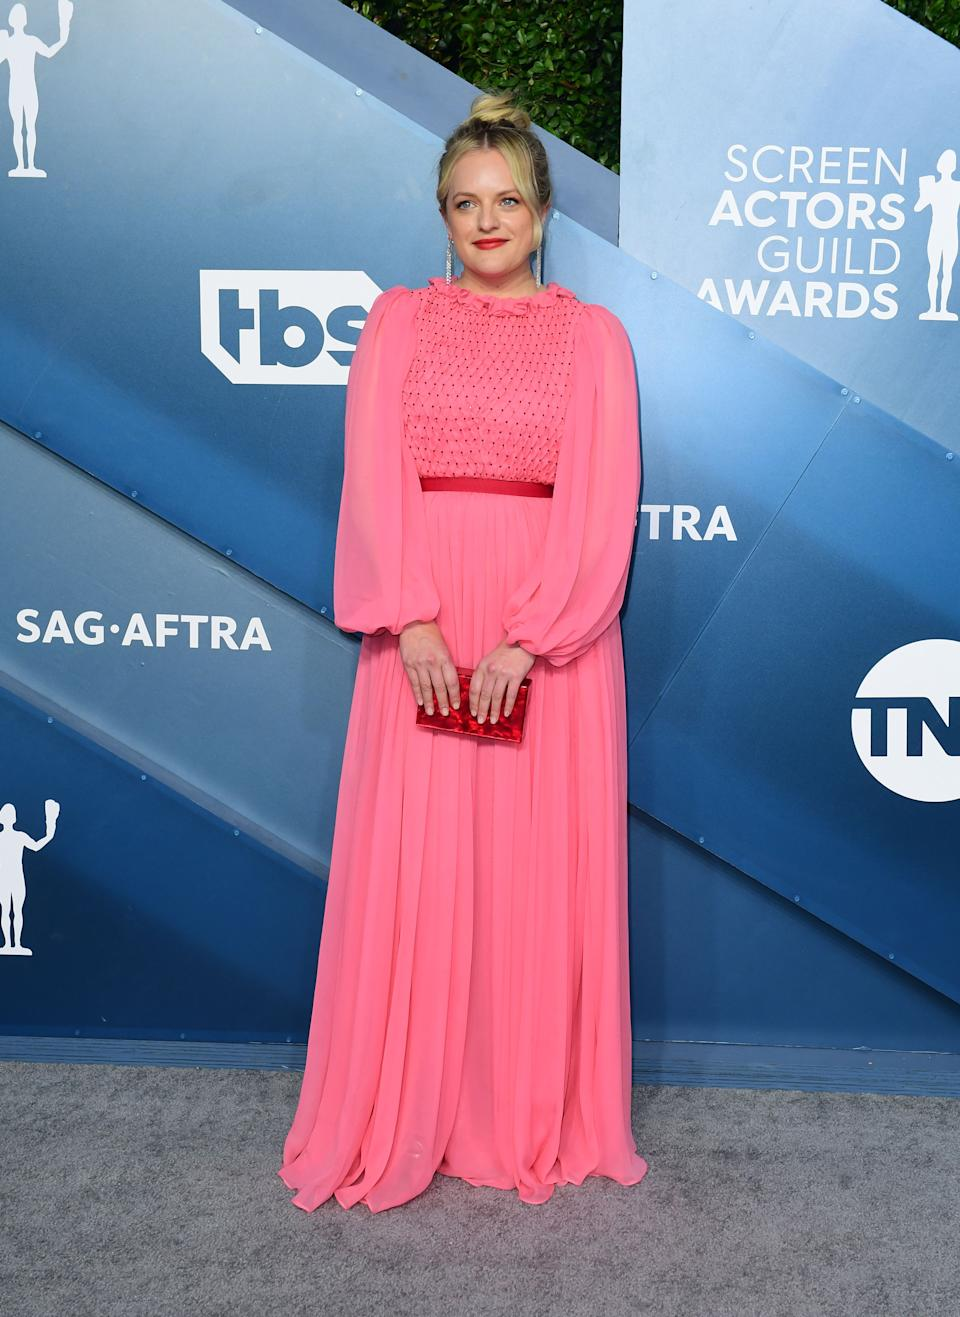 """<h2>Elisabeth Moss in Monique Lhuillier </h2><br>Elisabeth Moss follows Cynthia Erivo's lead in this red-and-pink long-sleeved frock designed by Monique Lhuillier. <span class=""""copyright"""">Photo by FREDERIC J. BROWN/AFP via Getty Images.</span>"""